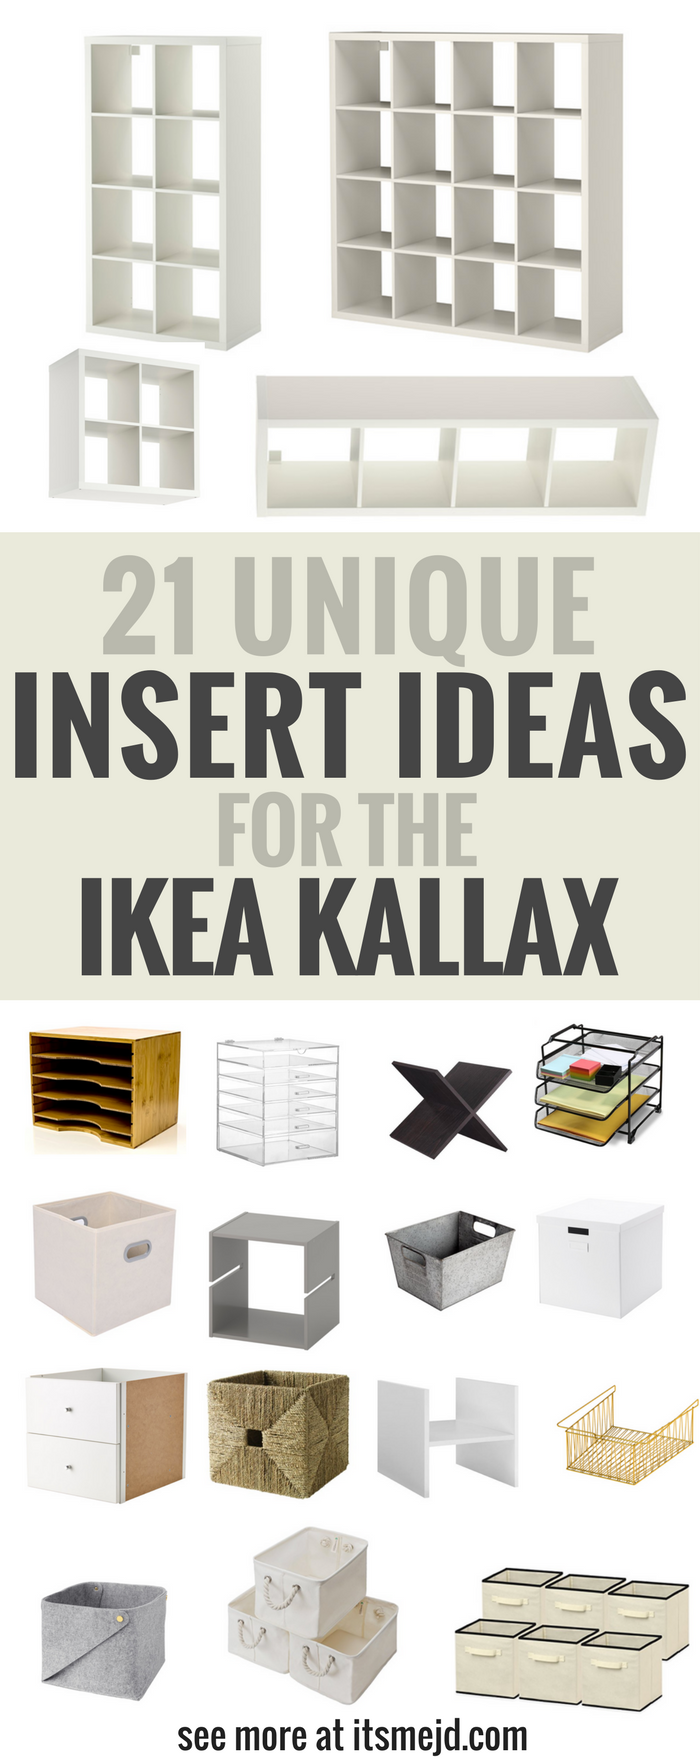 21 Unique Insert Ideas For An Ikea Kallax Bookcase